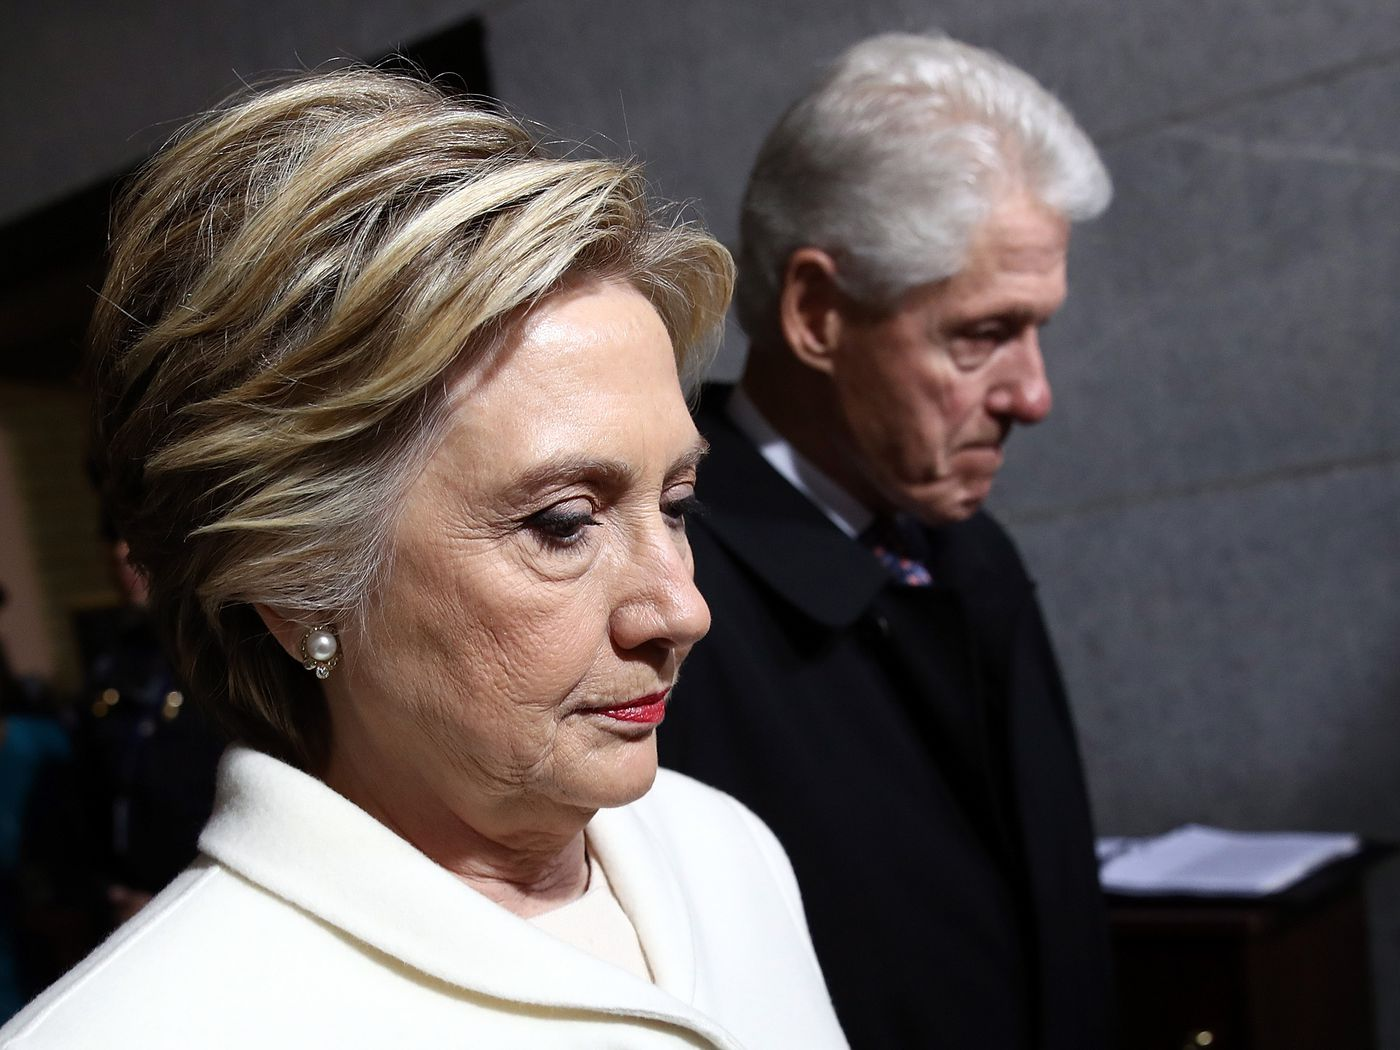 Hillary Clinton: troubling comments on Bill Clinton and